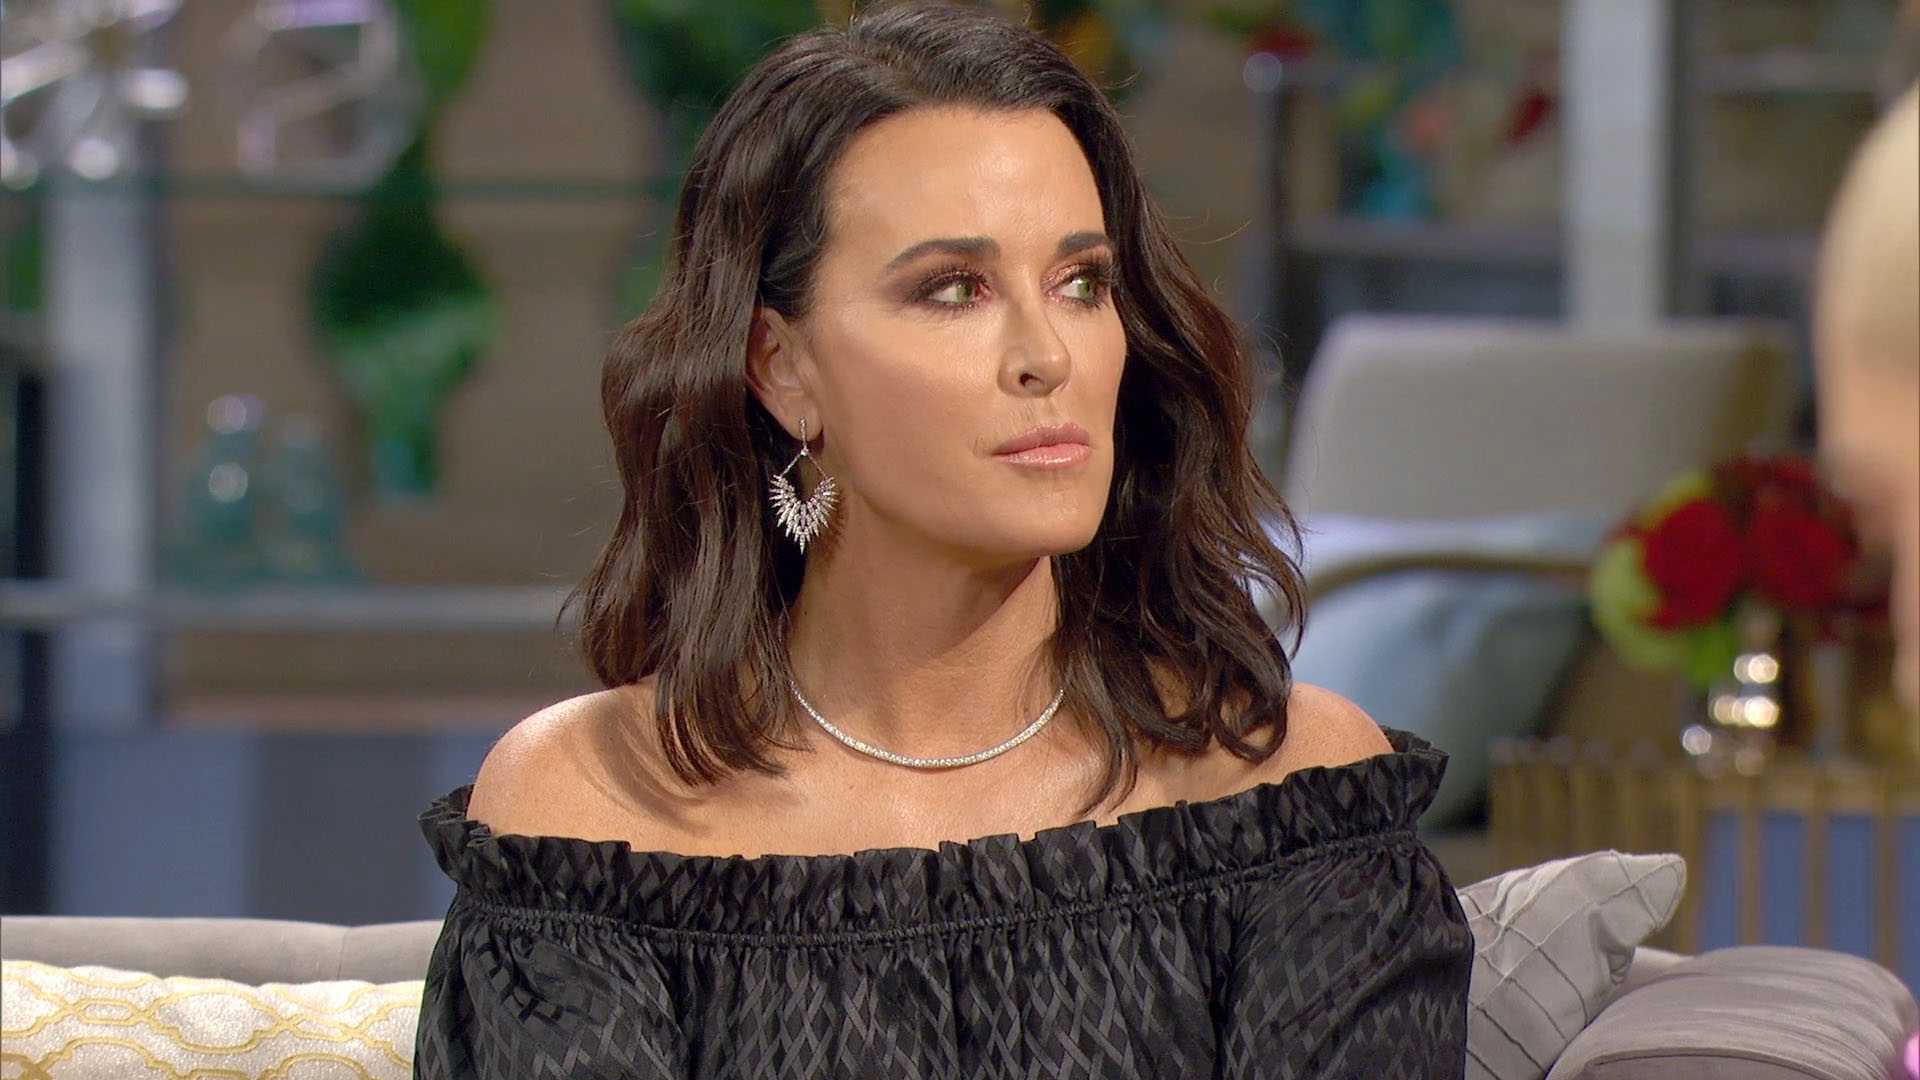 Kyle Richards Isn't Sure She'll Stay in Her New House